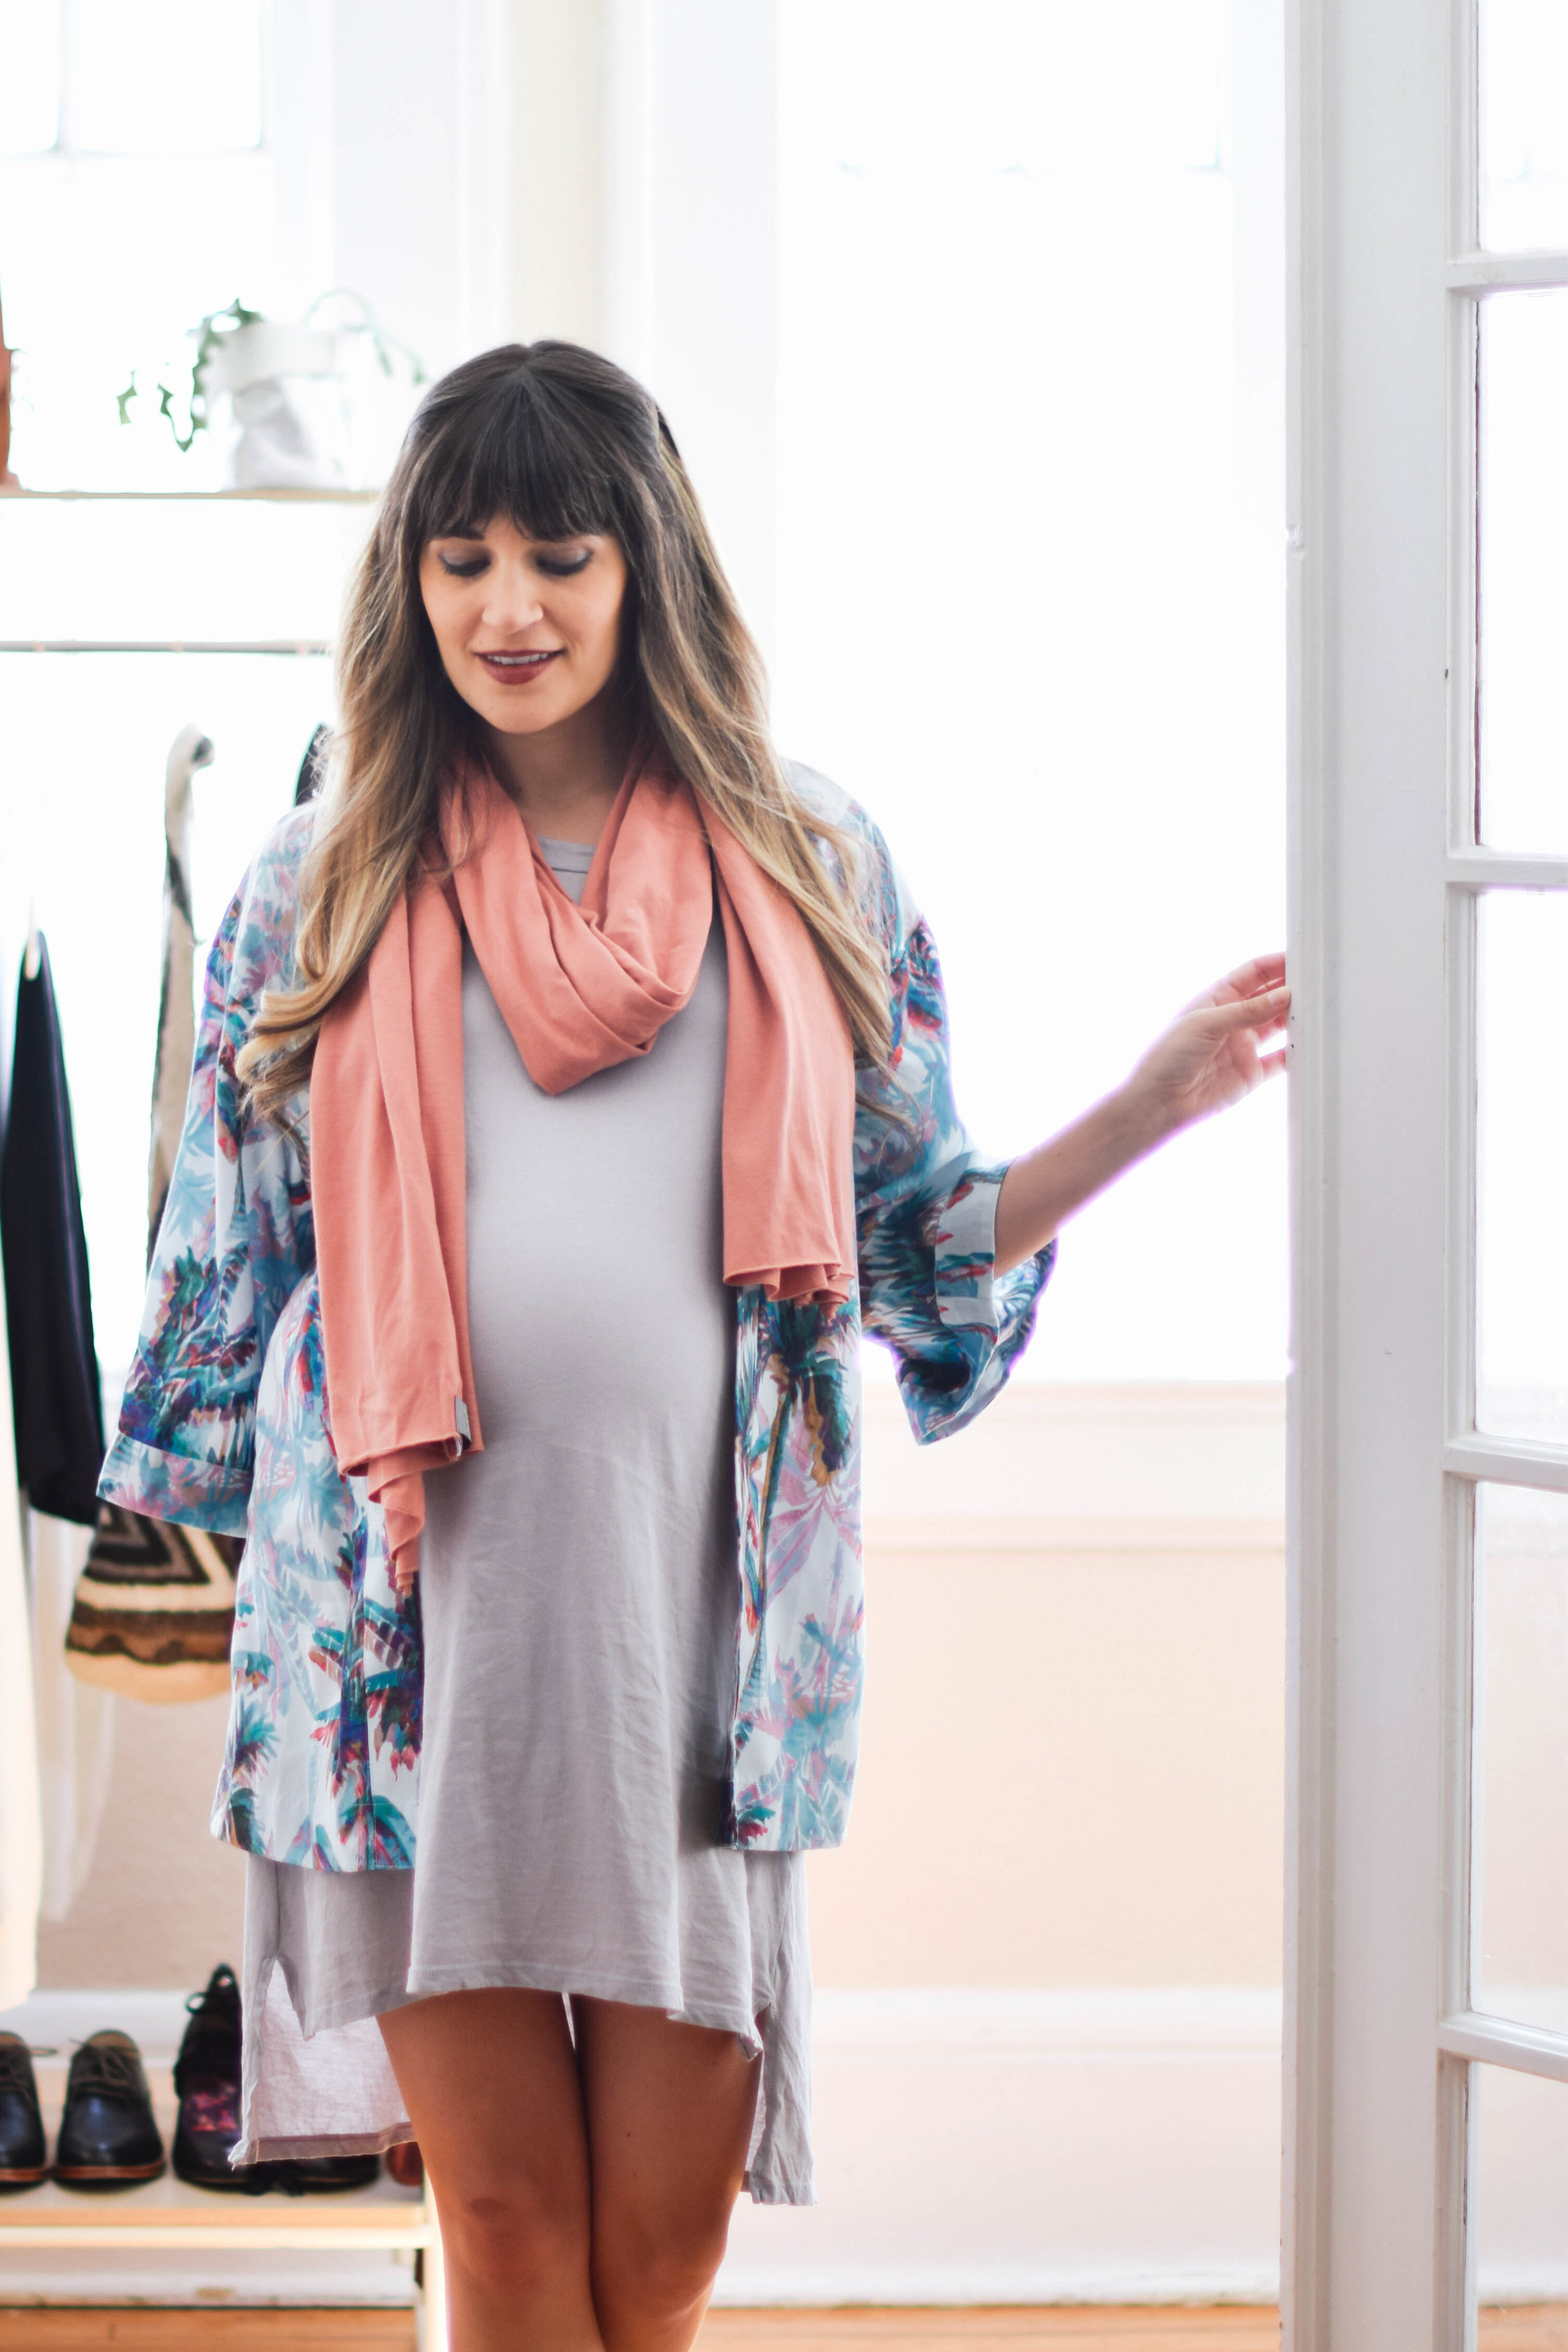 Essential oils scarf and blue kimono for chilly days // A Week Of Sustainable Maternity Outfits With Natalie Kay Smith From Sustainably Chic on The Good Trade